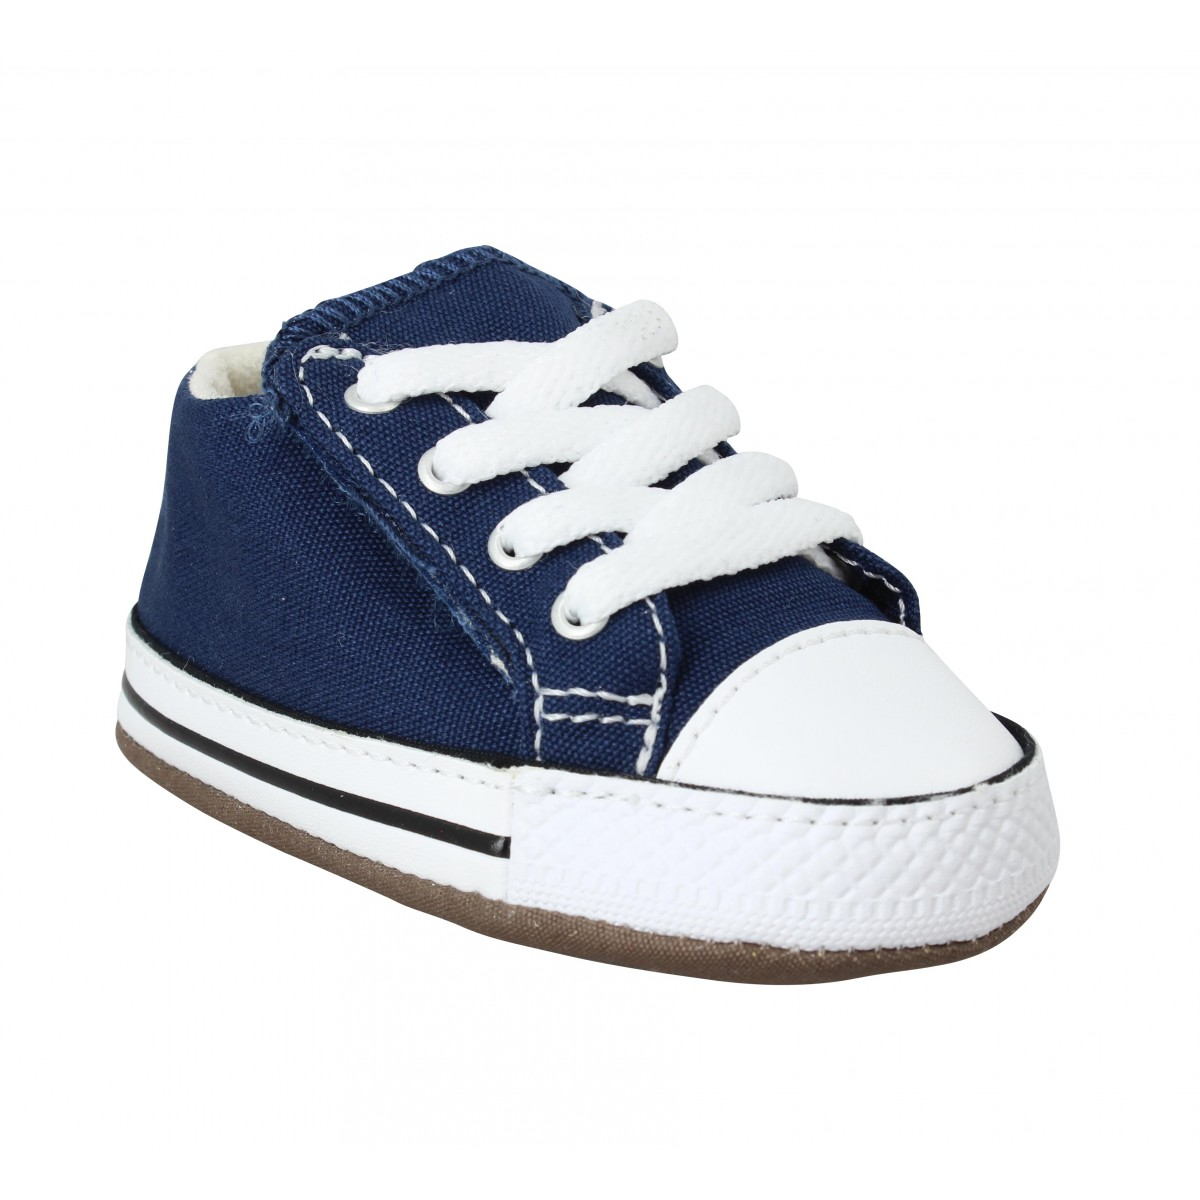 Baskets CONVERSE Chuck Taylor All Star Cribster Mid toile Enfant Navy